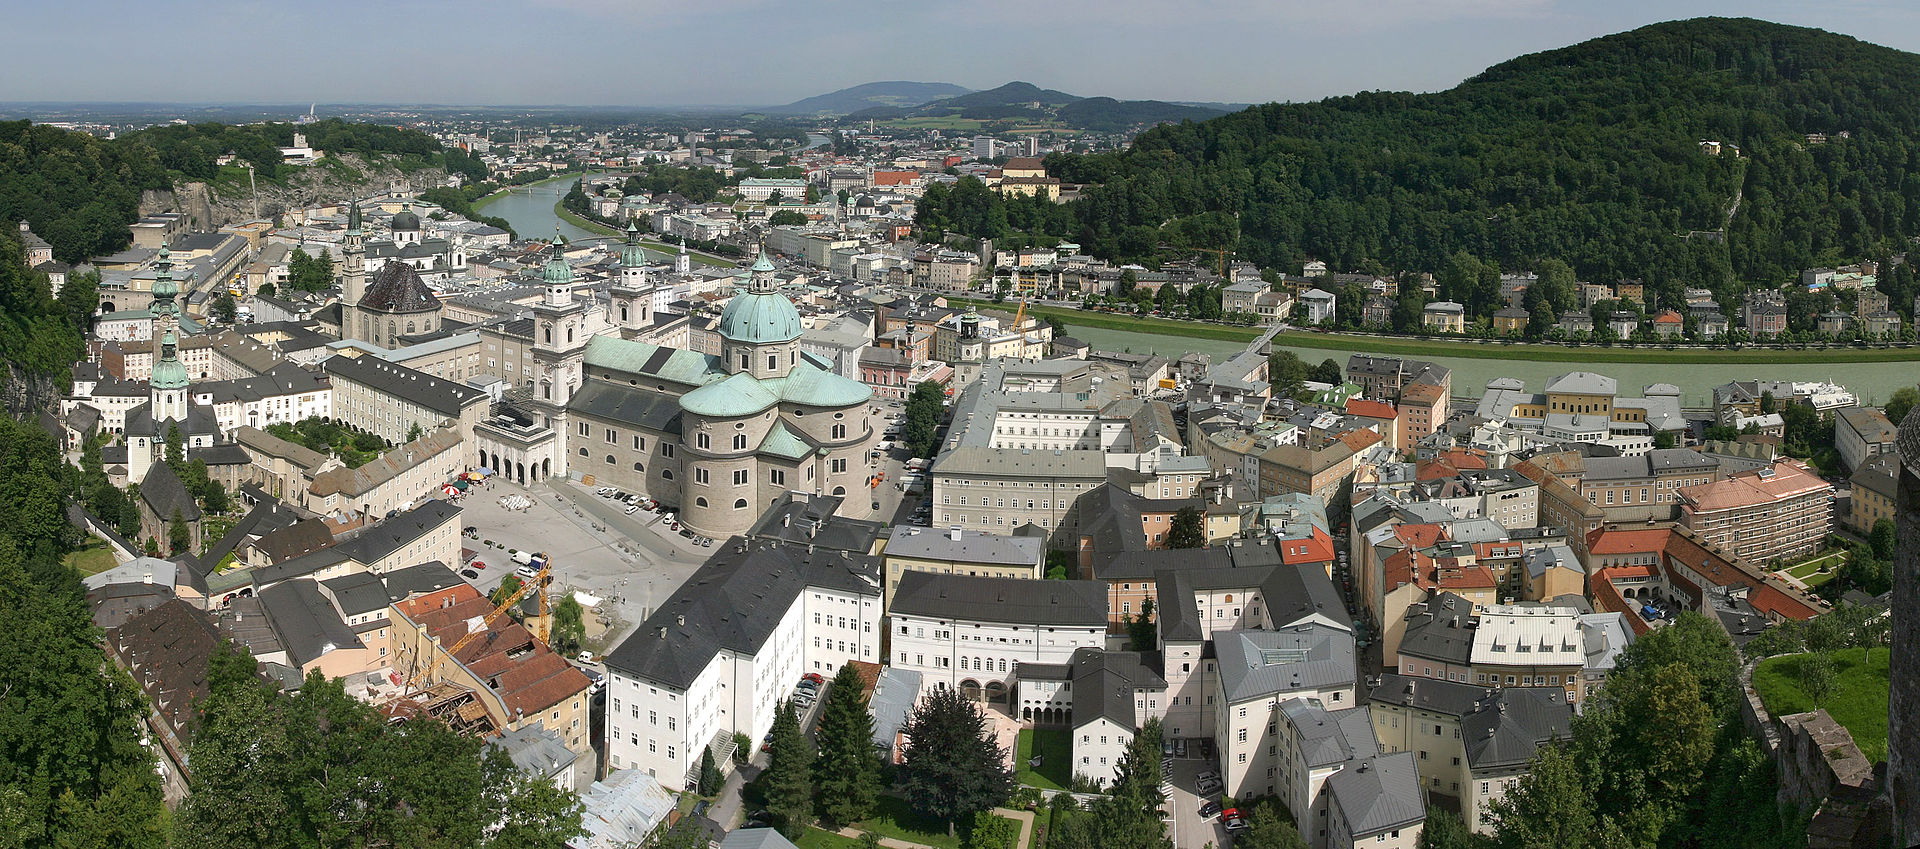 Salzburg (Image by David Iliff/License/CC by SA 3.0/WikiCommons)